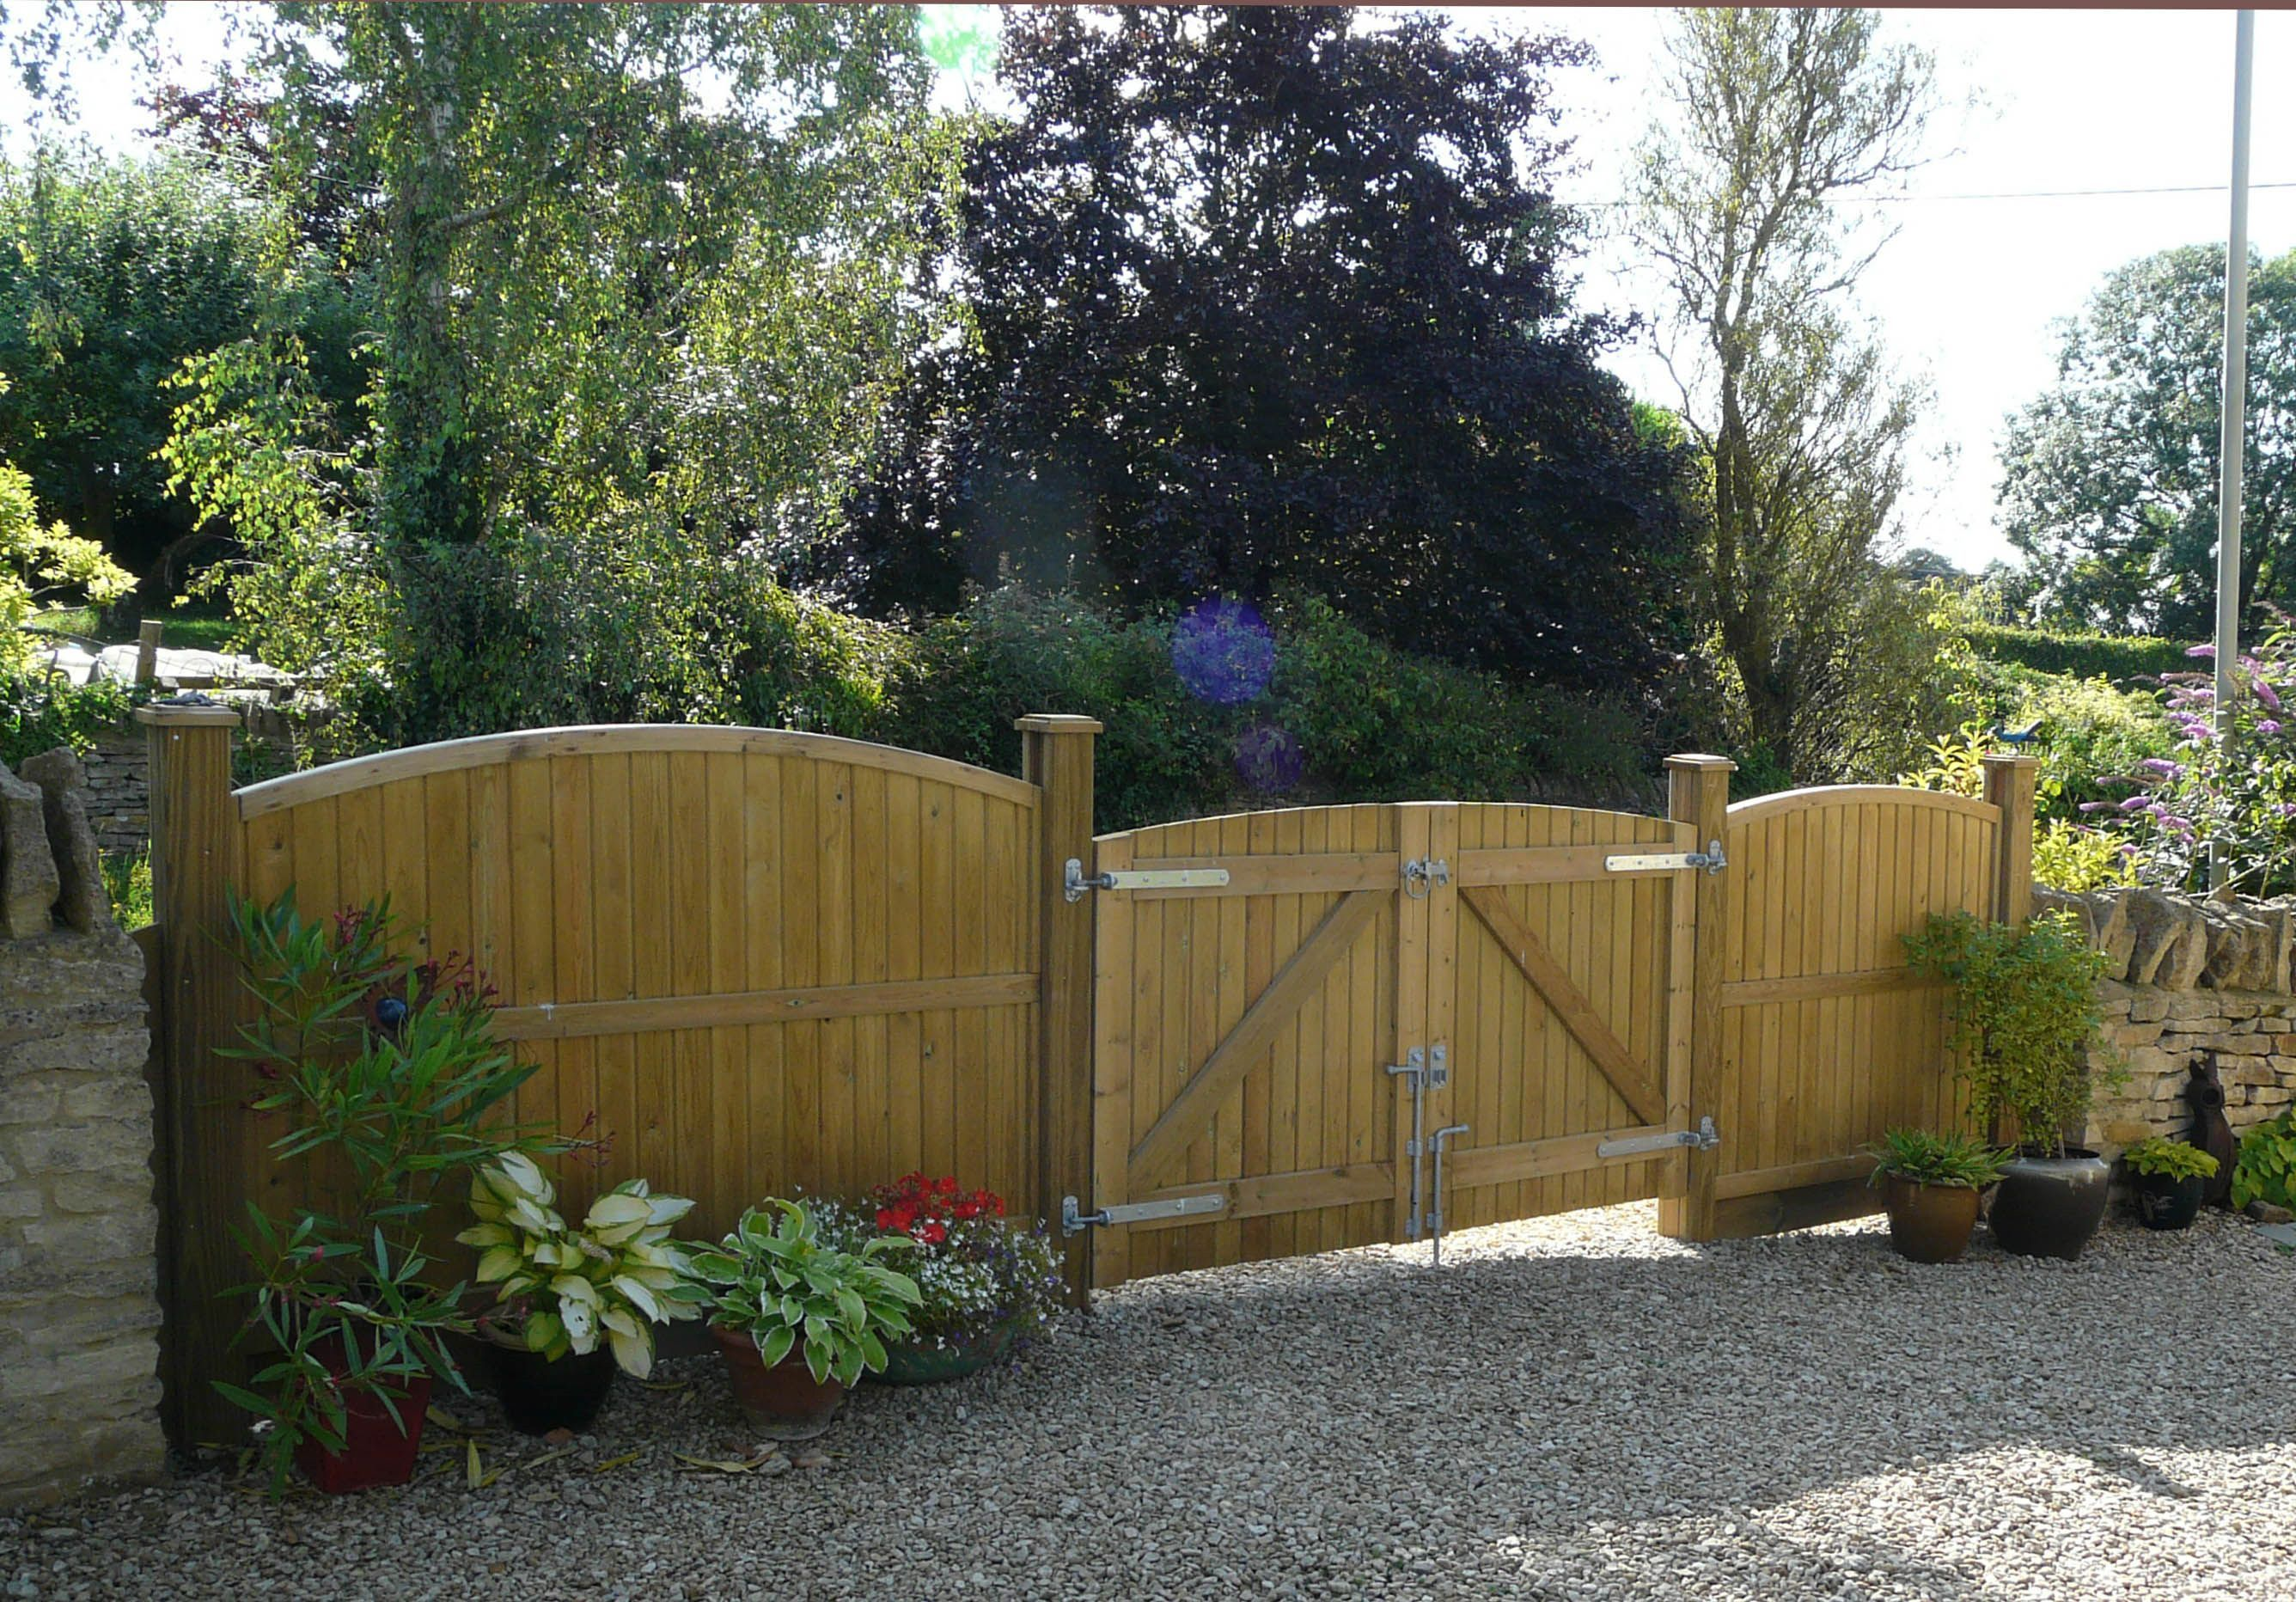 Our arched top convex wooden featherboard garden gates are